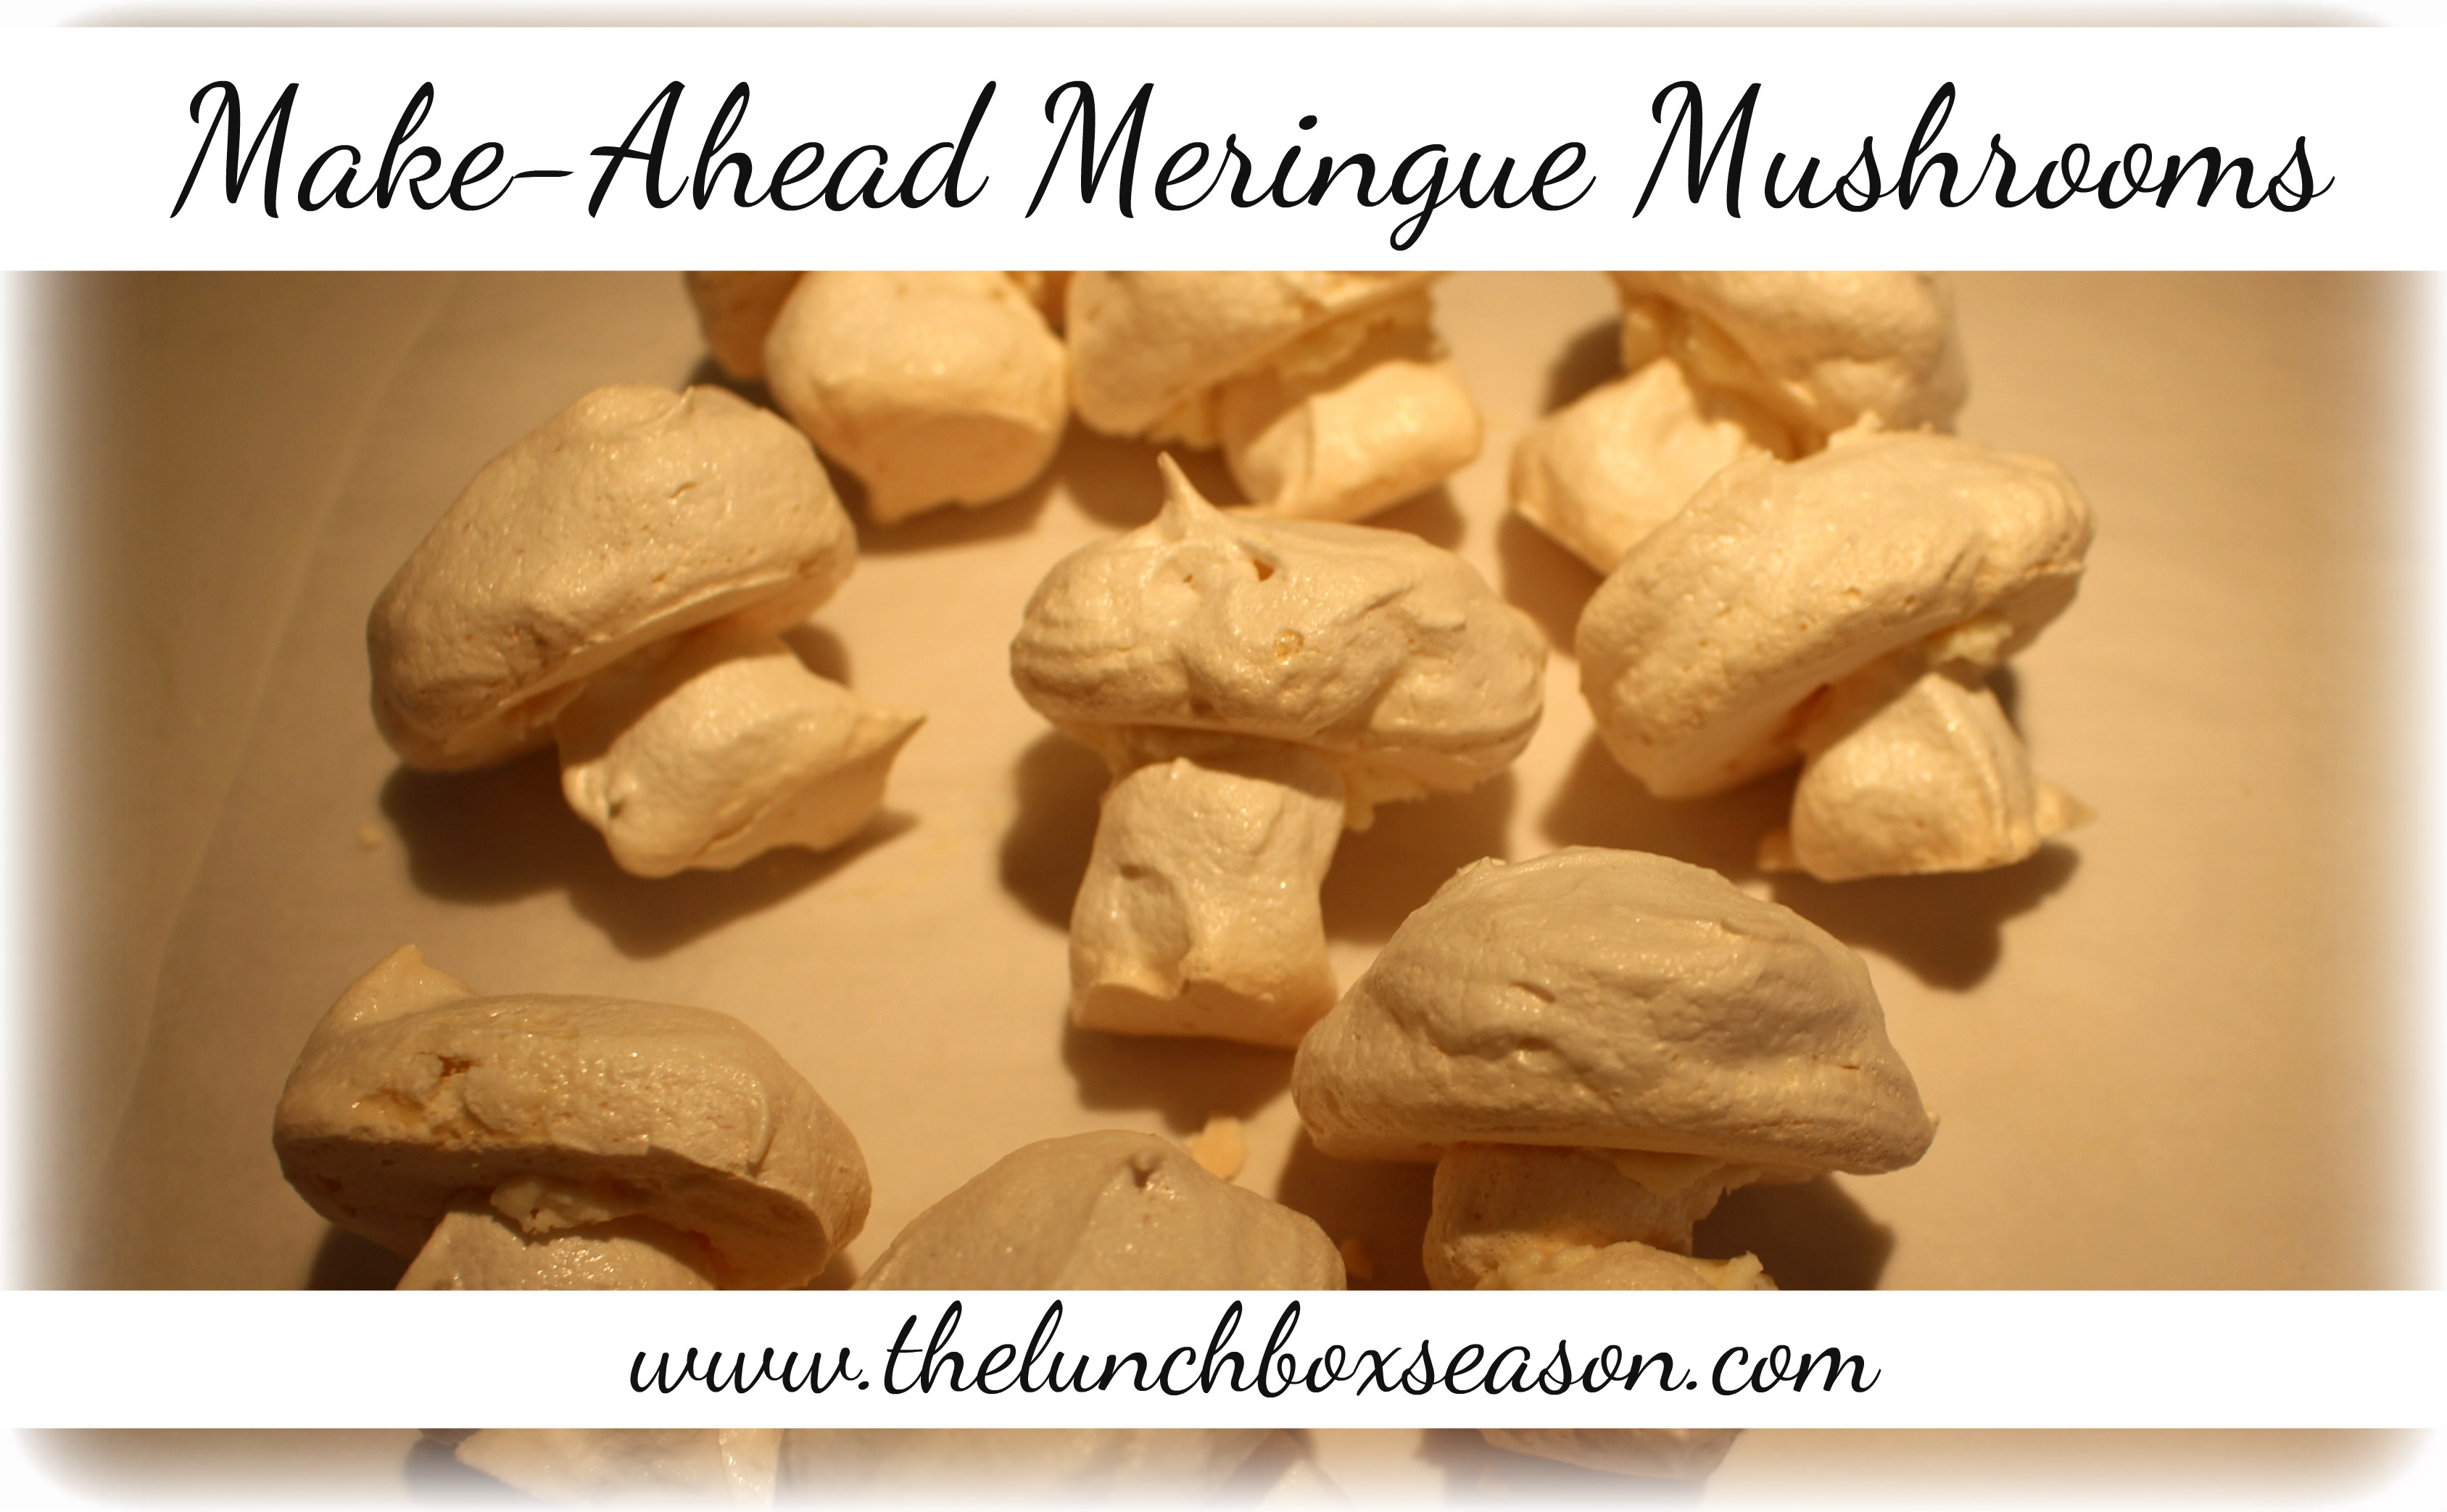 Easy Make-Ahead Meringue Mushrooms